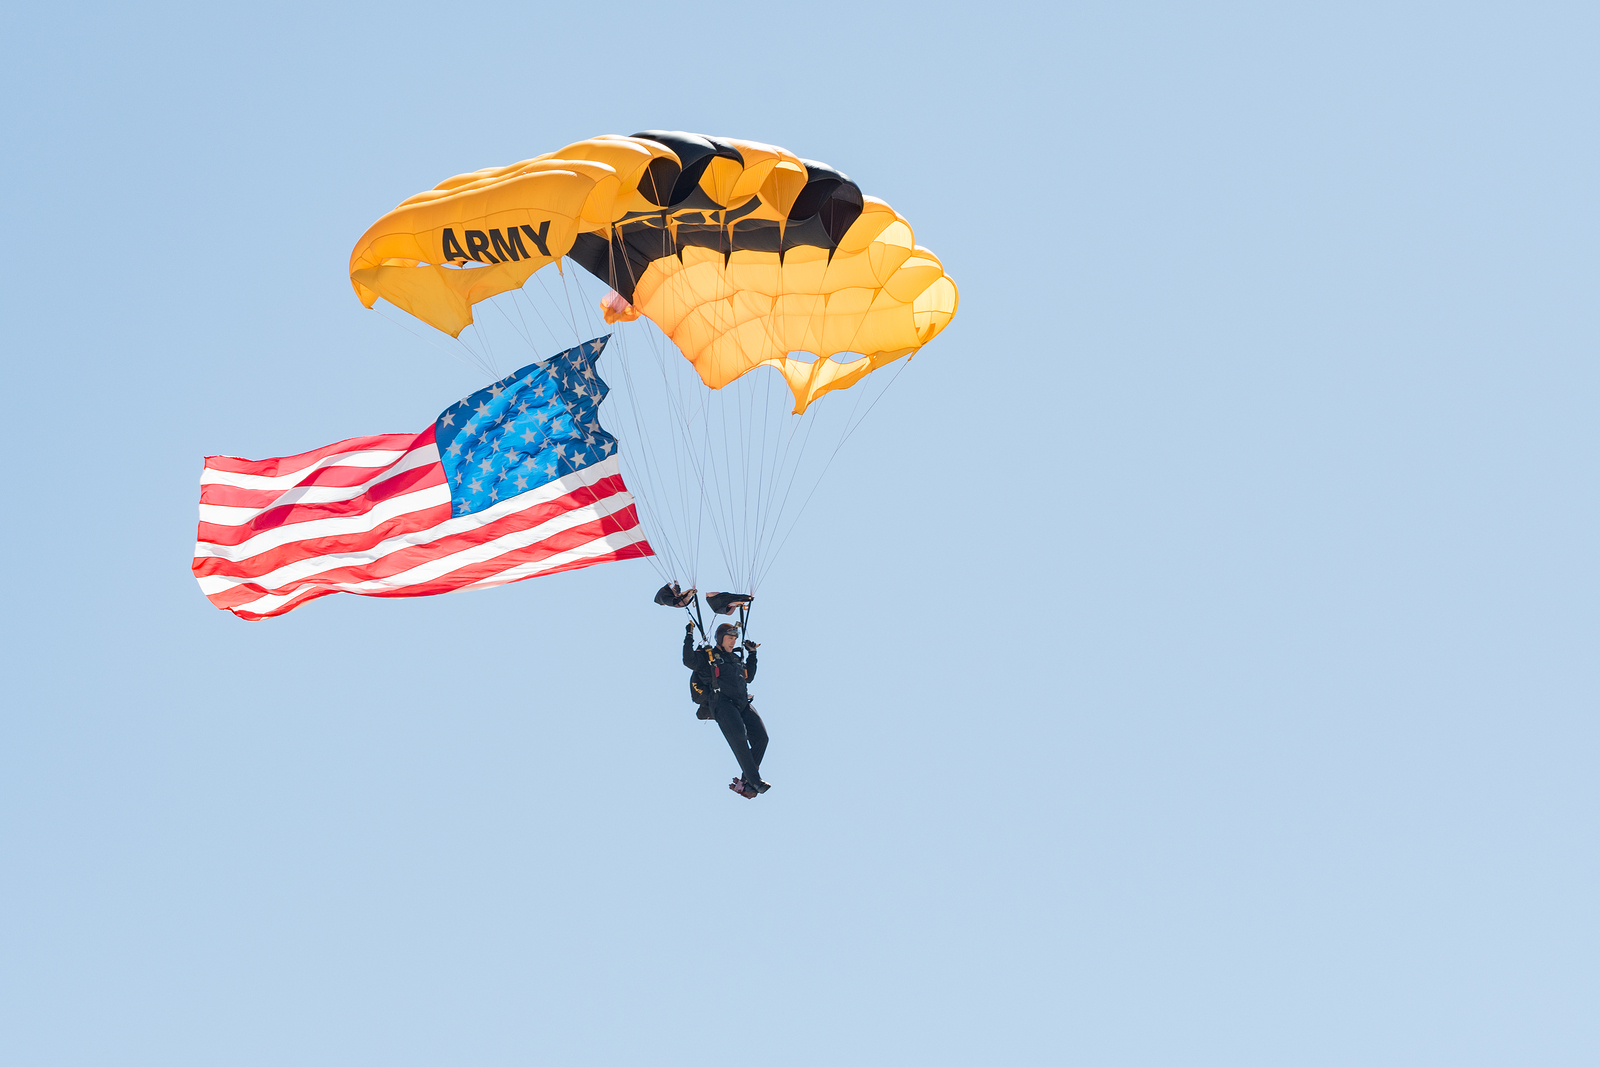 U.S Army Man Parachuting